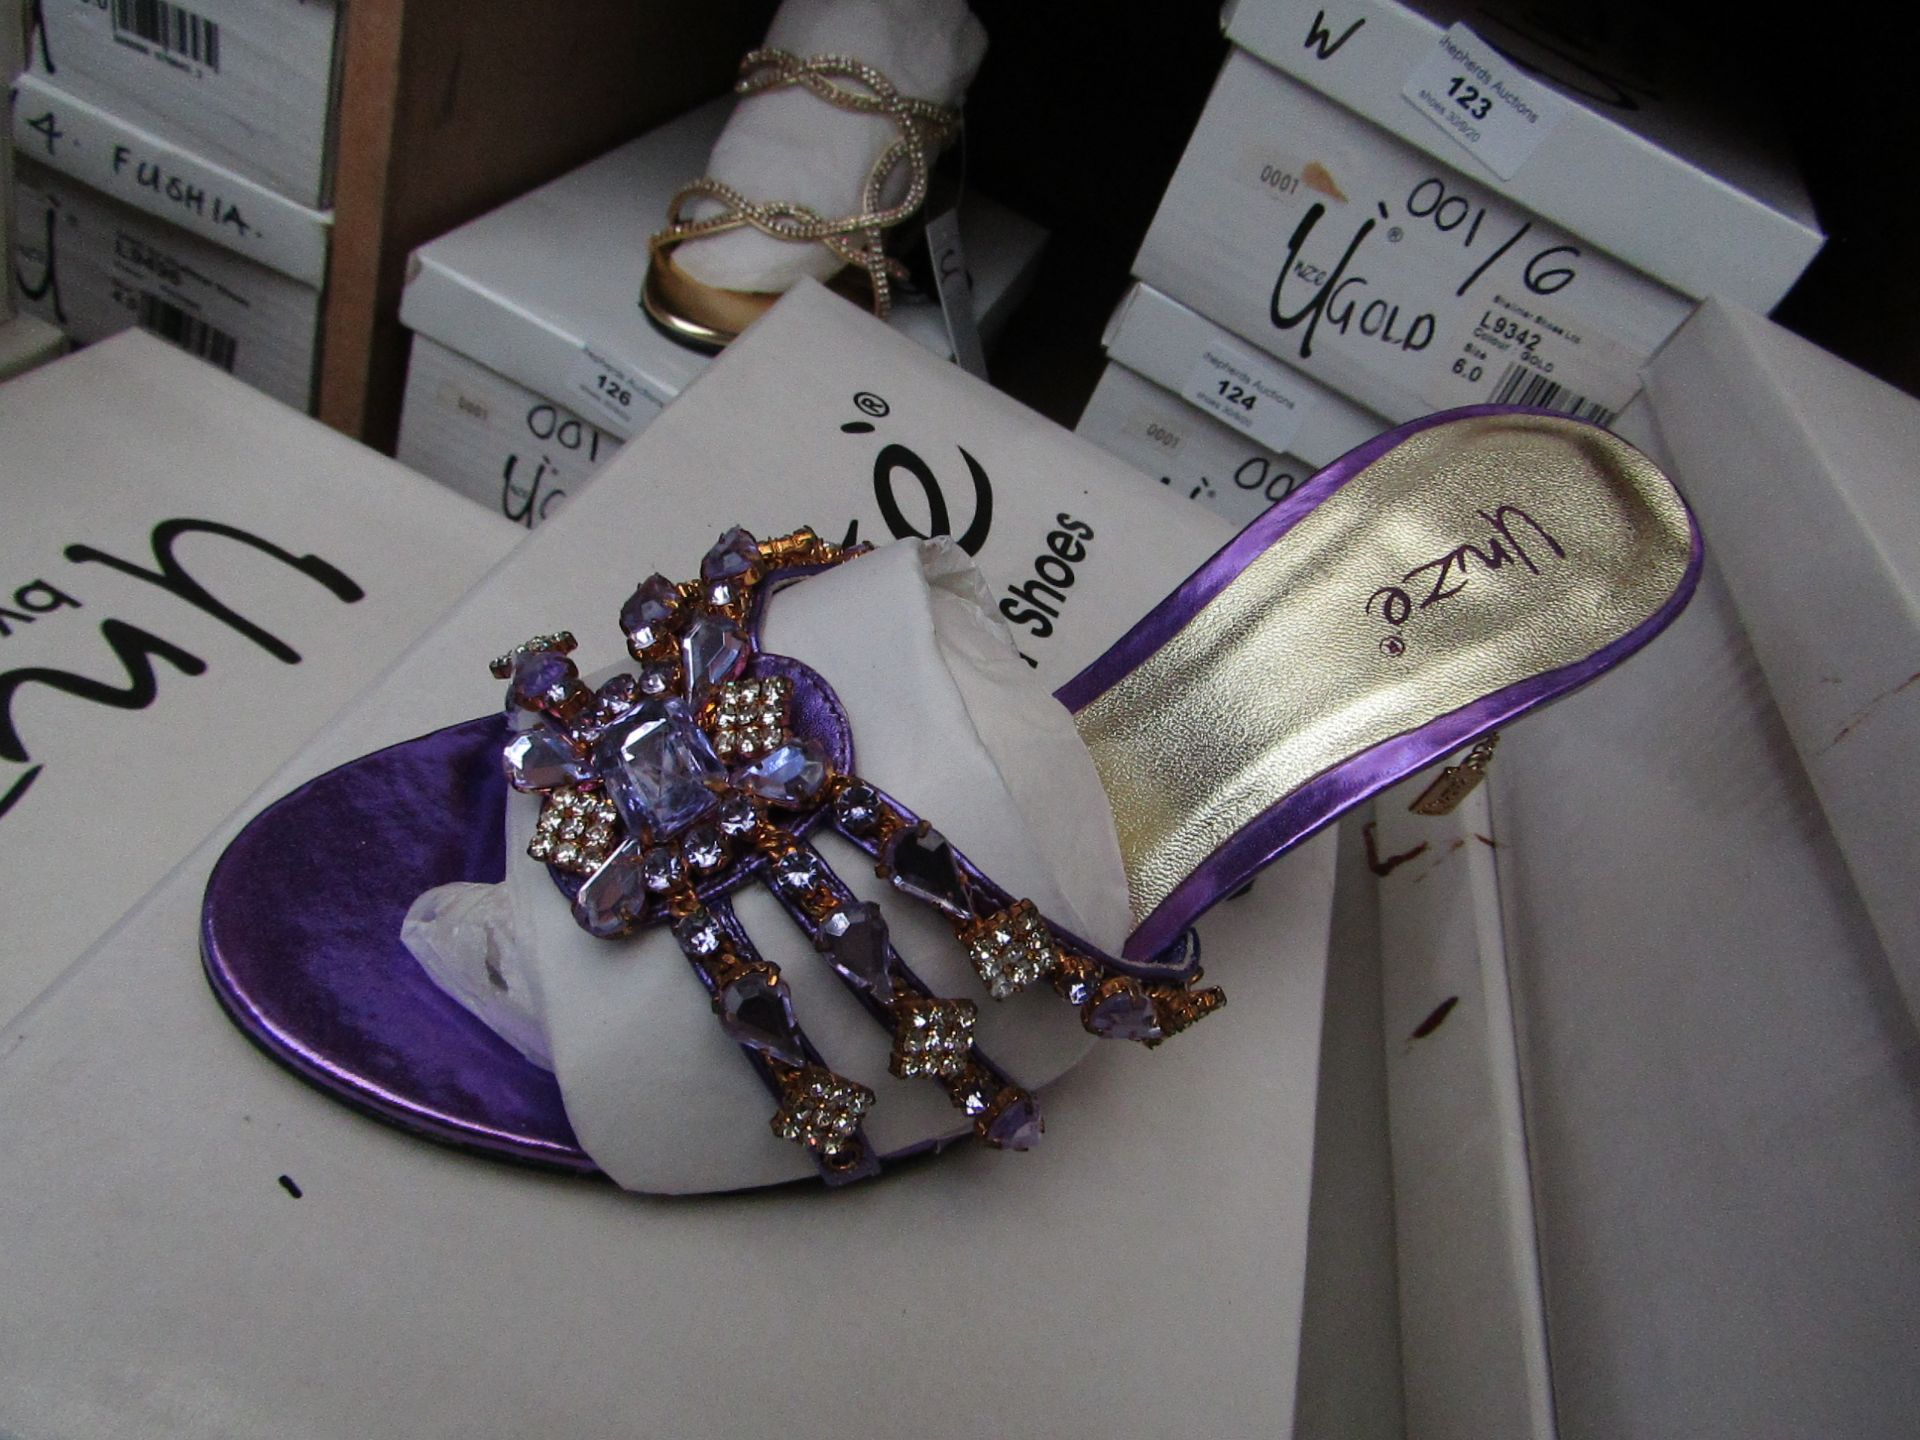 Unze by Shalamar Shoes Ladies Lilia & Embellished Shoes size 6 new & boxed see image for design